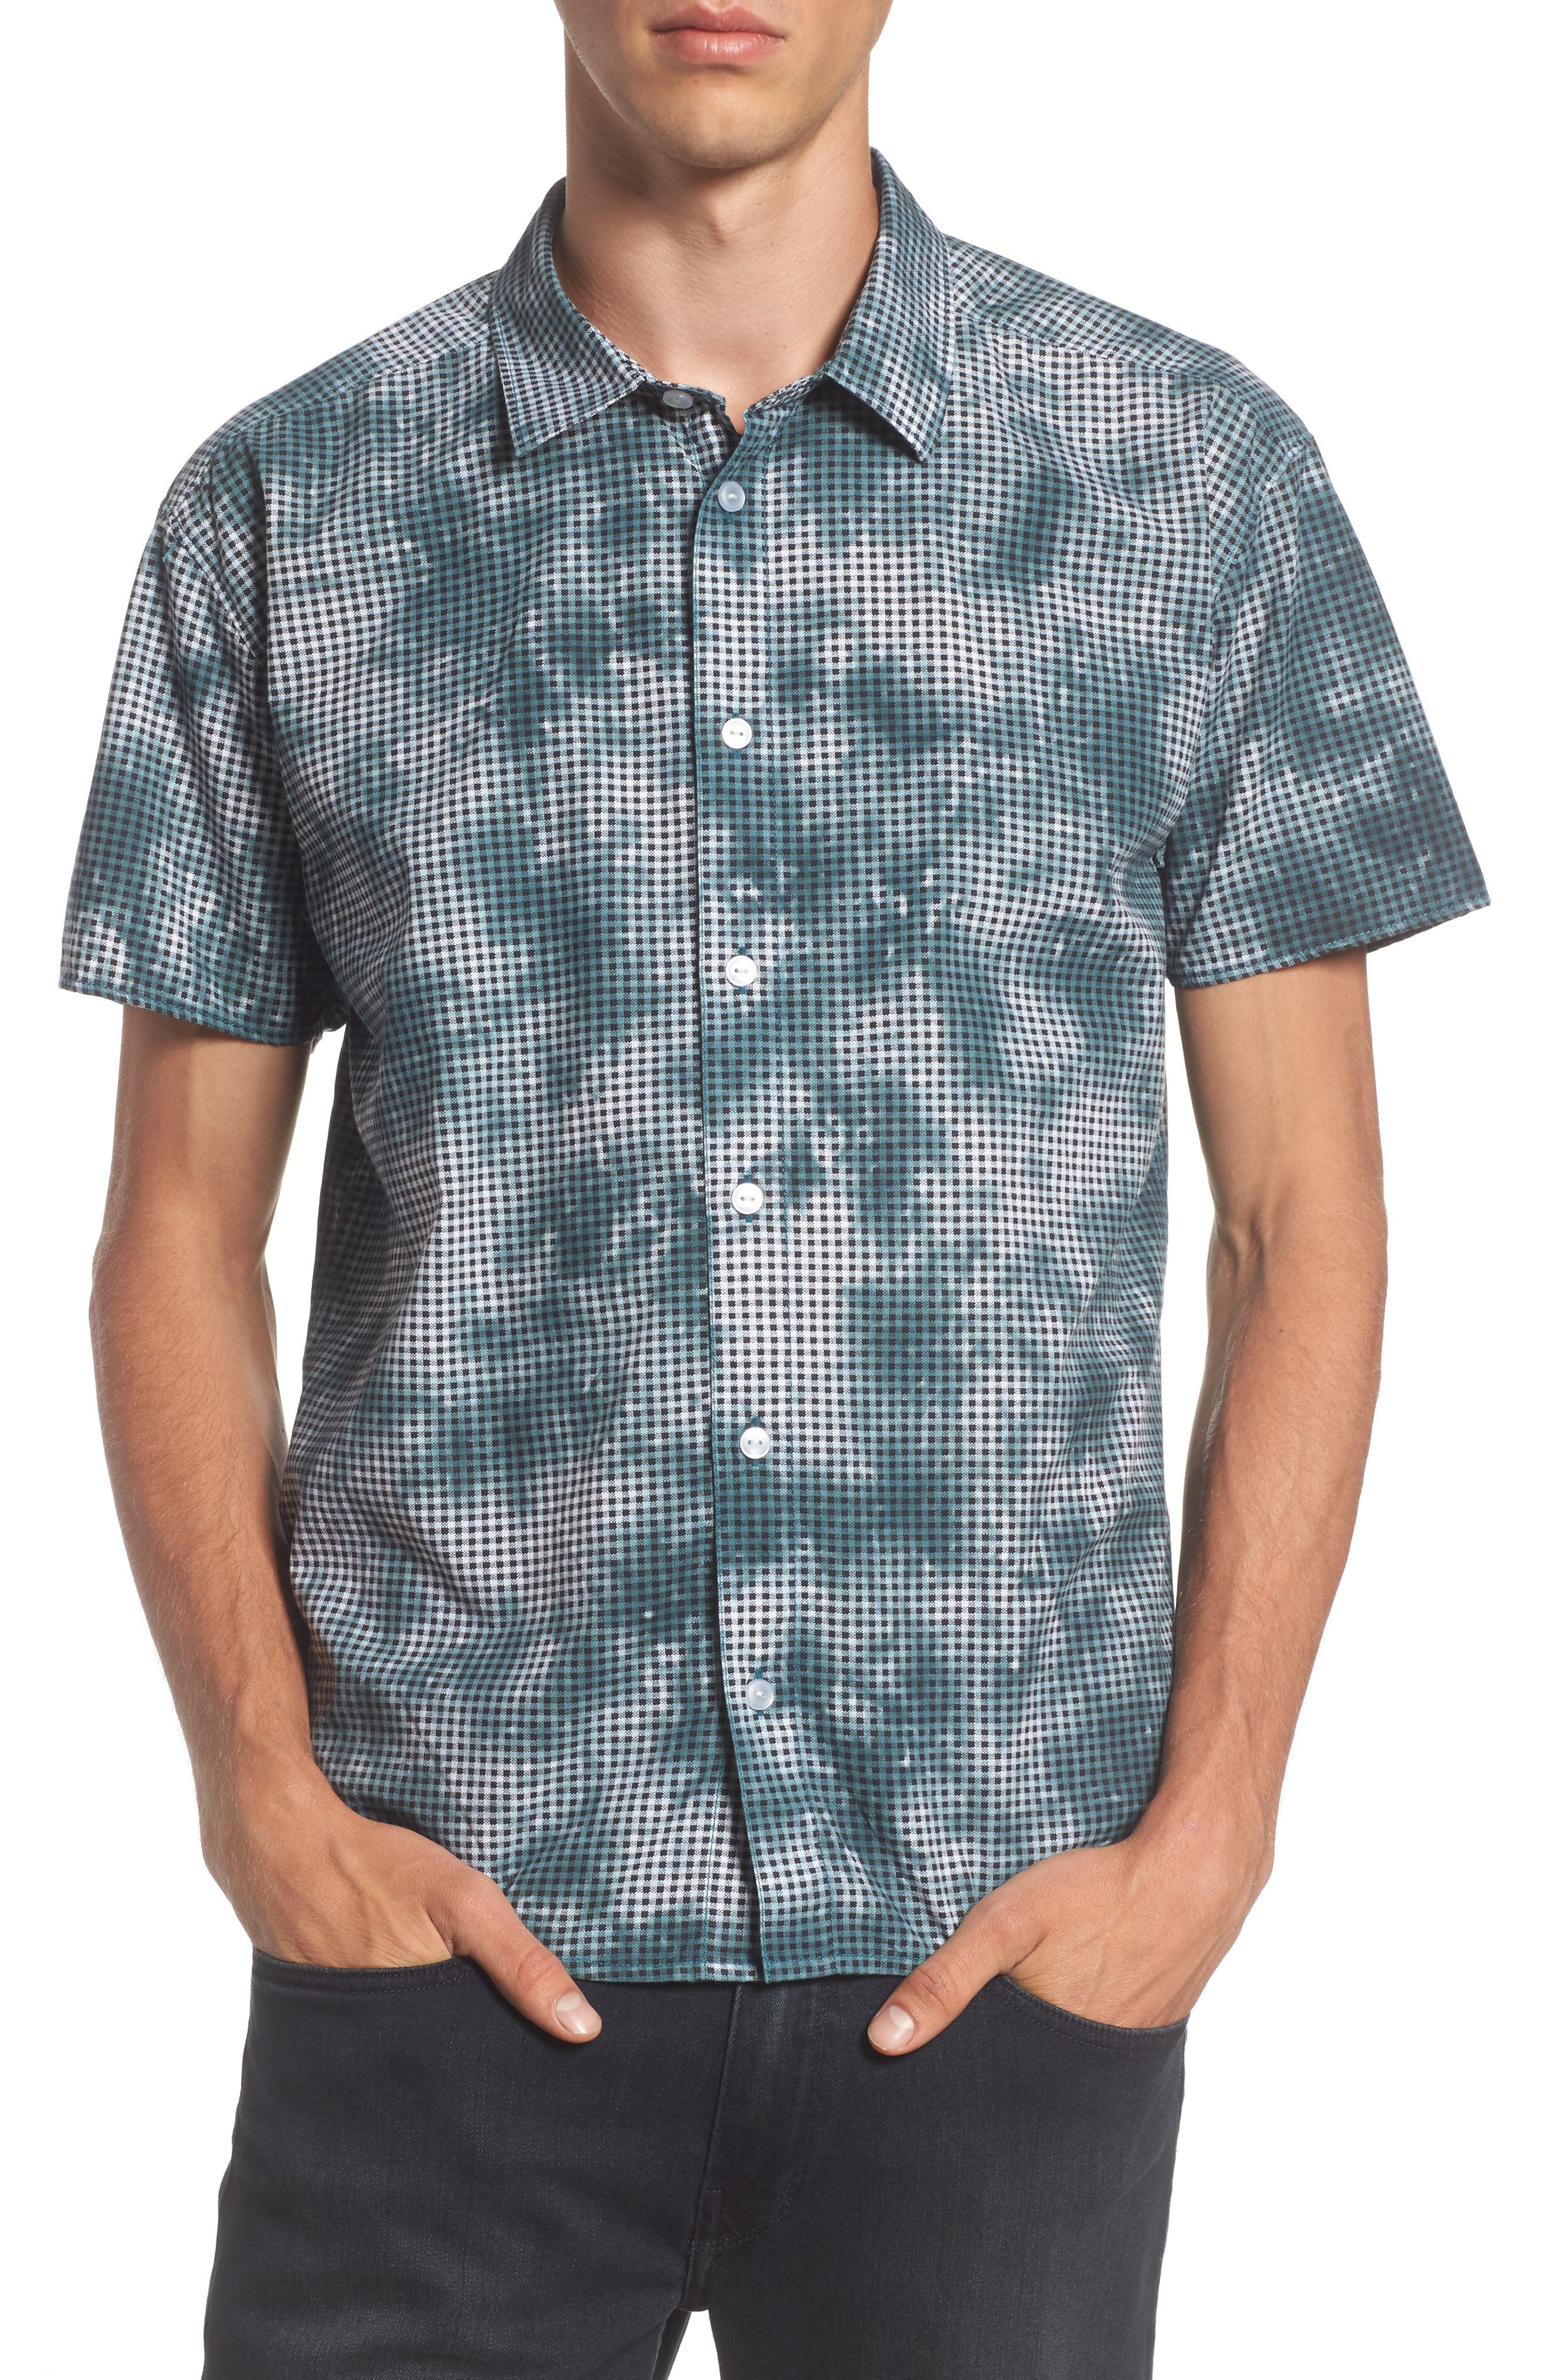 Alternate Image 1 Selected - RVCA Tie Dye Check Shirt